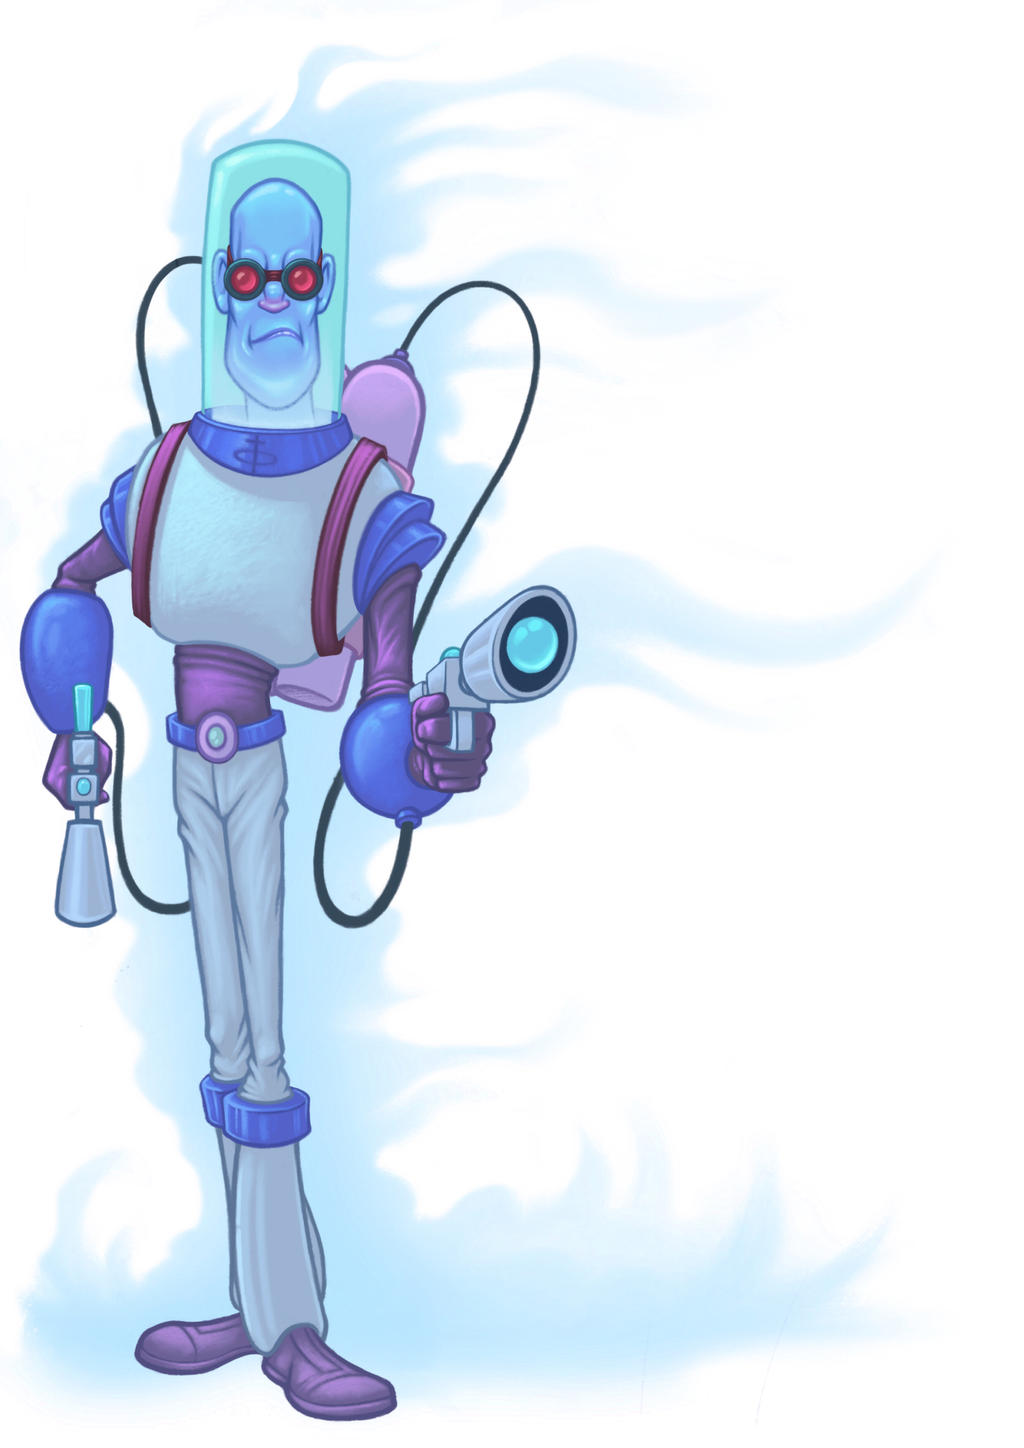 Mr. Freeze by Rey-Paez